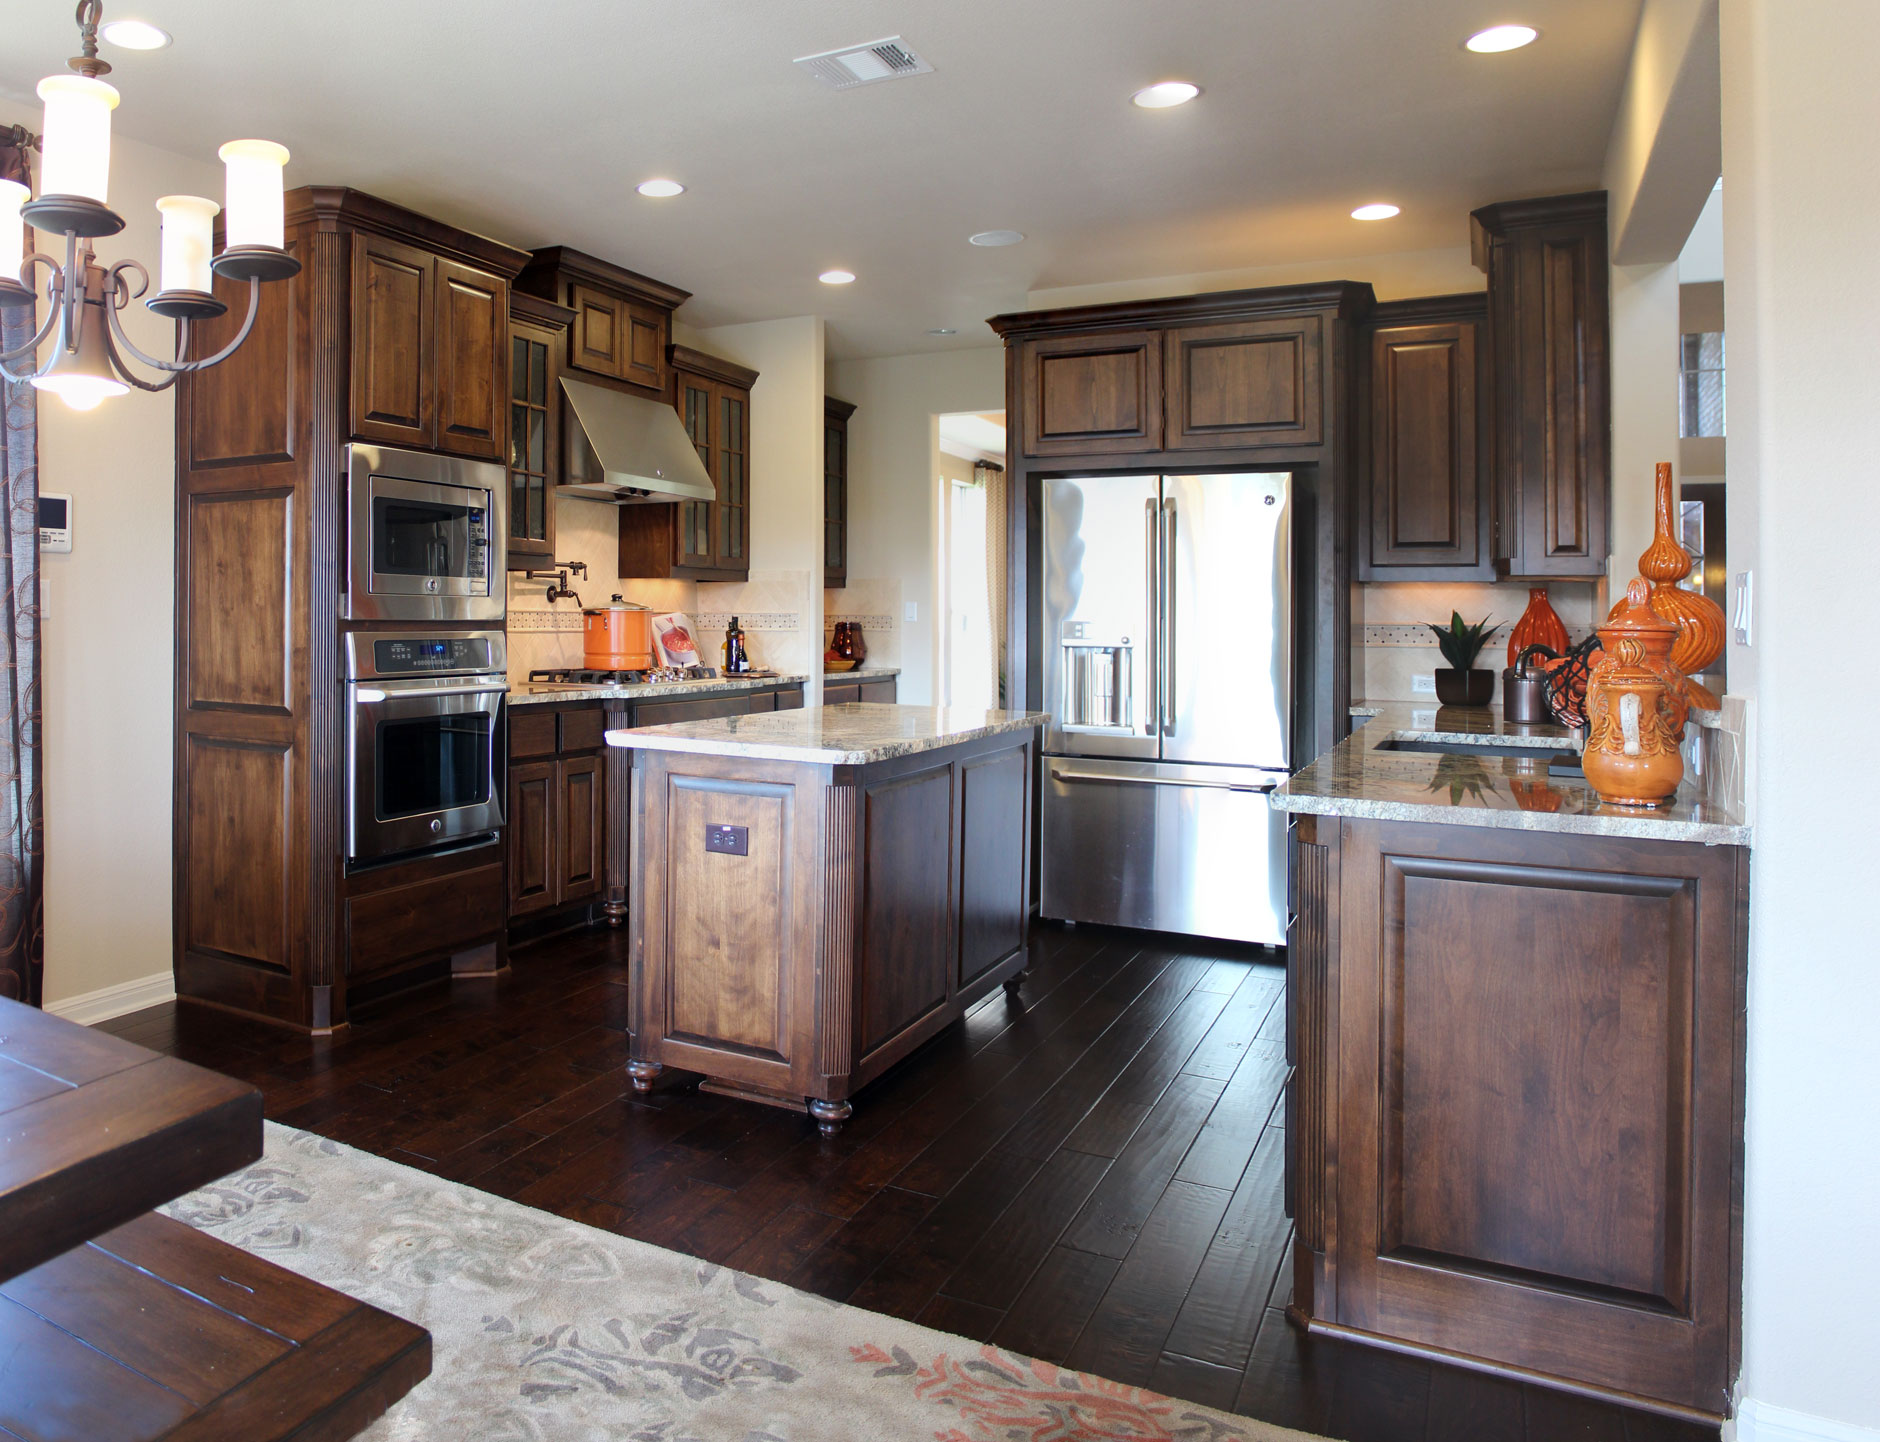 red oak kitchen cabinets design for a small space 027 - burrows central texas builder ...